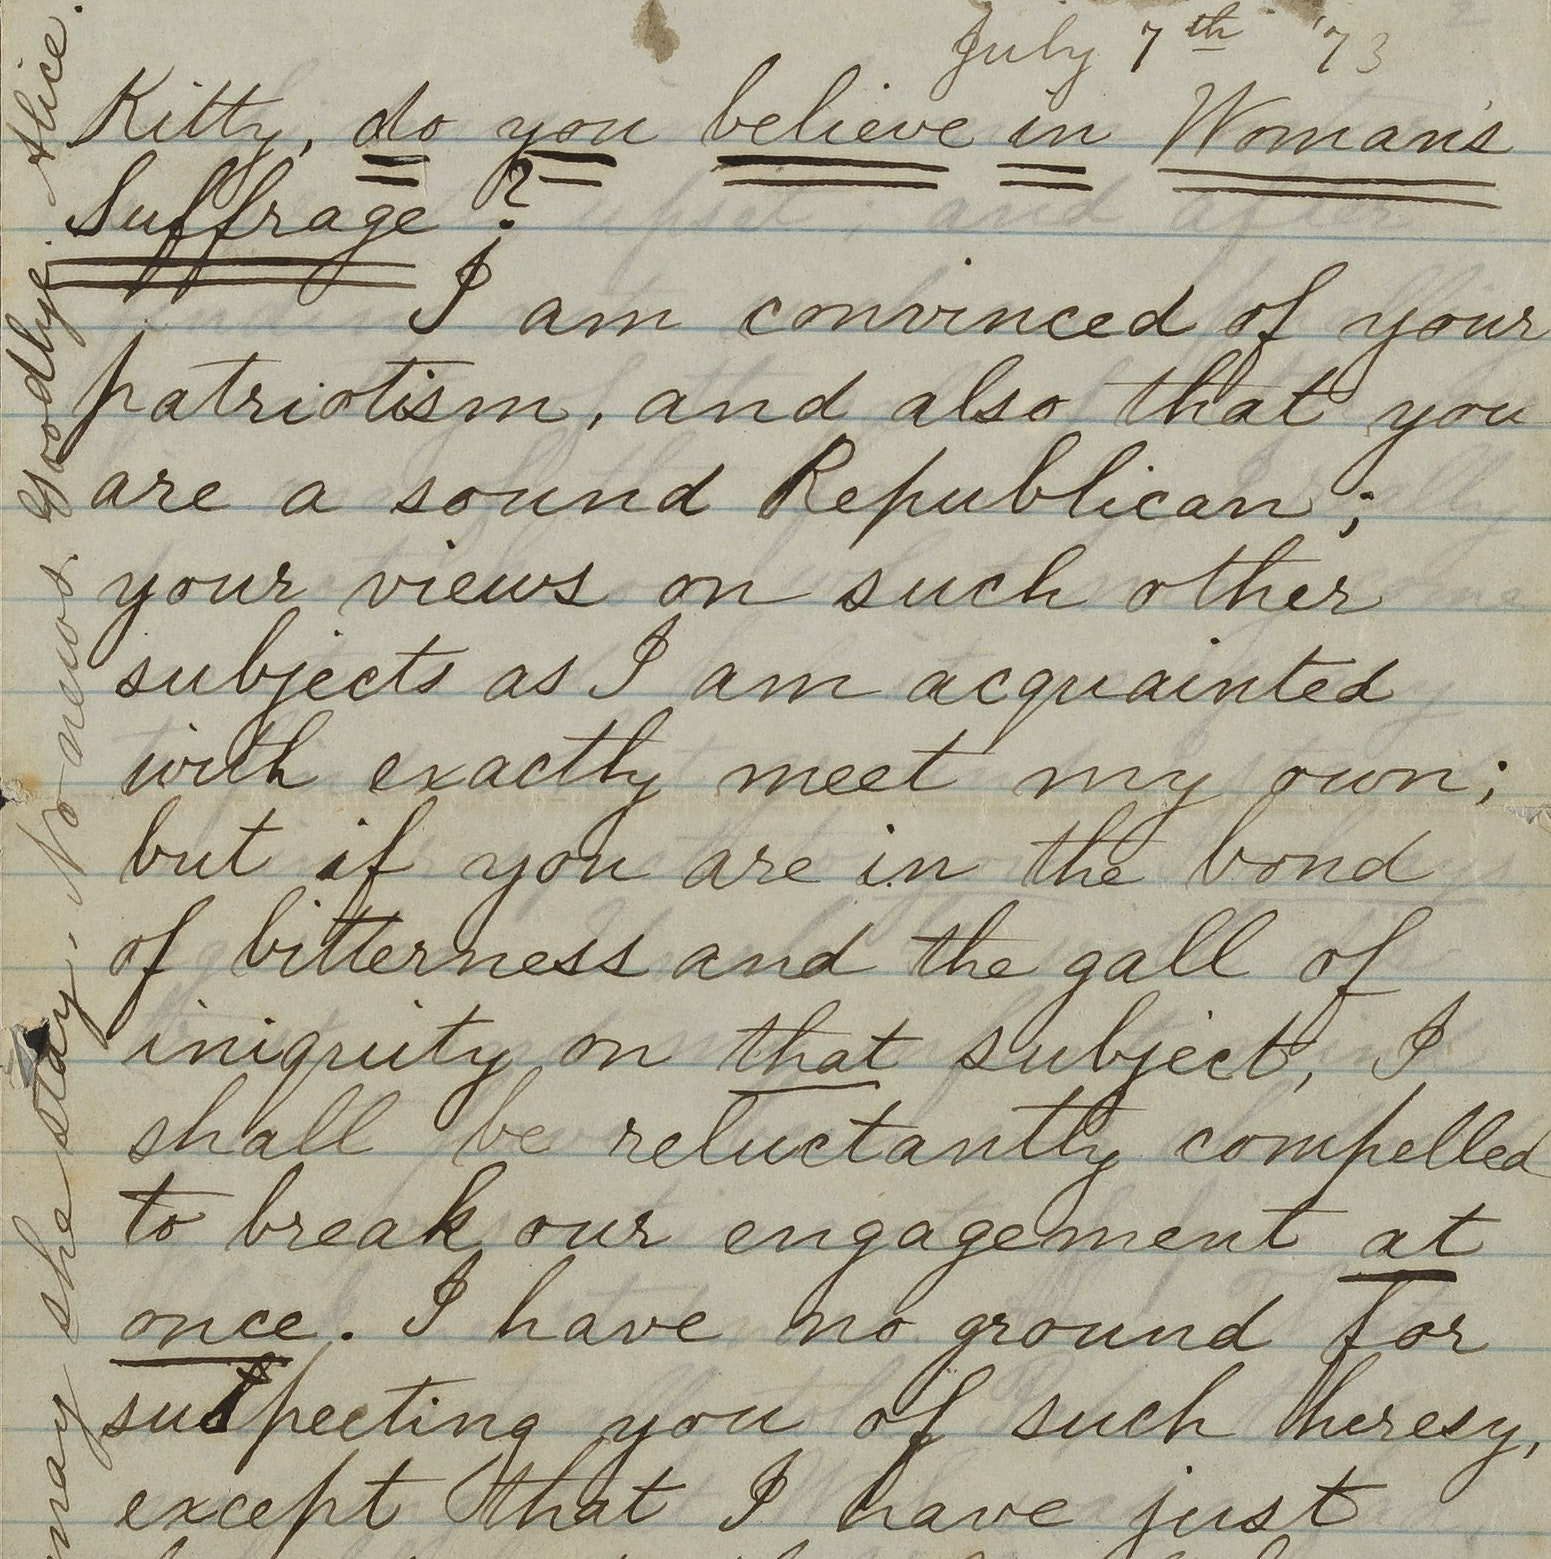 Letter from Alice Blackwell